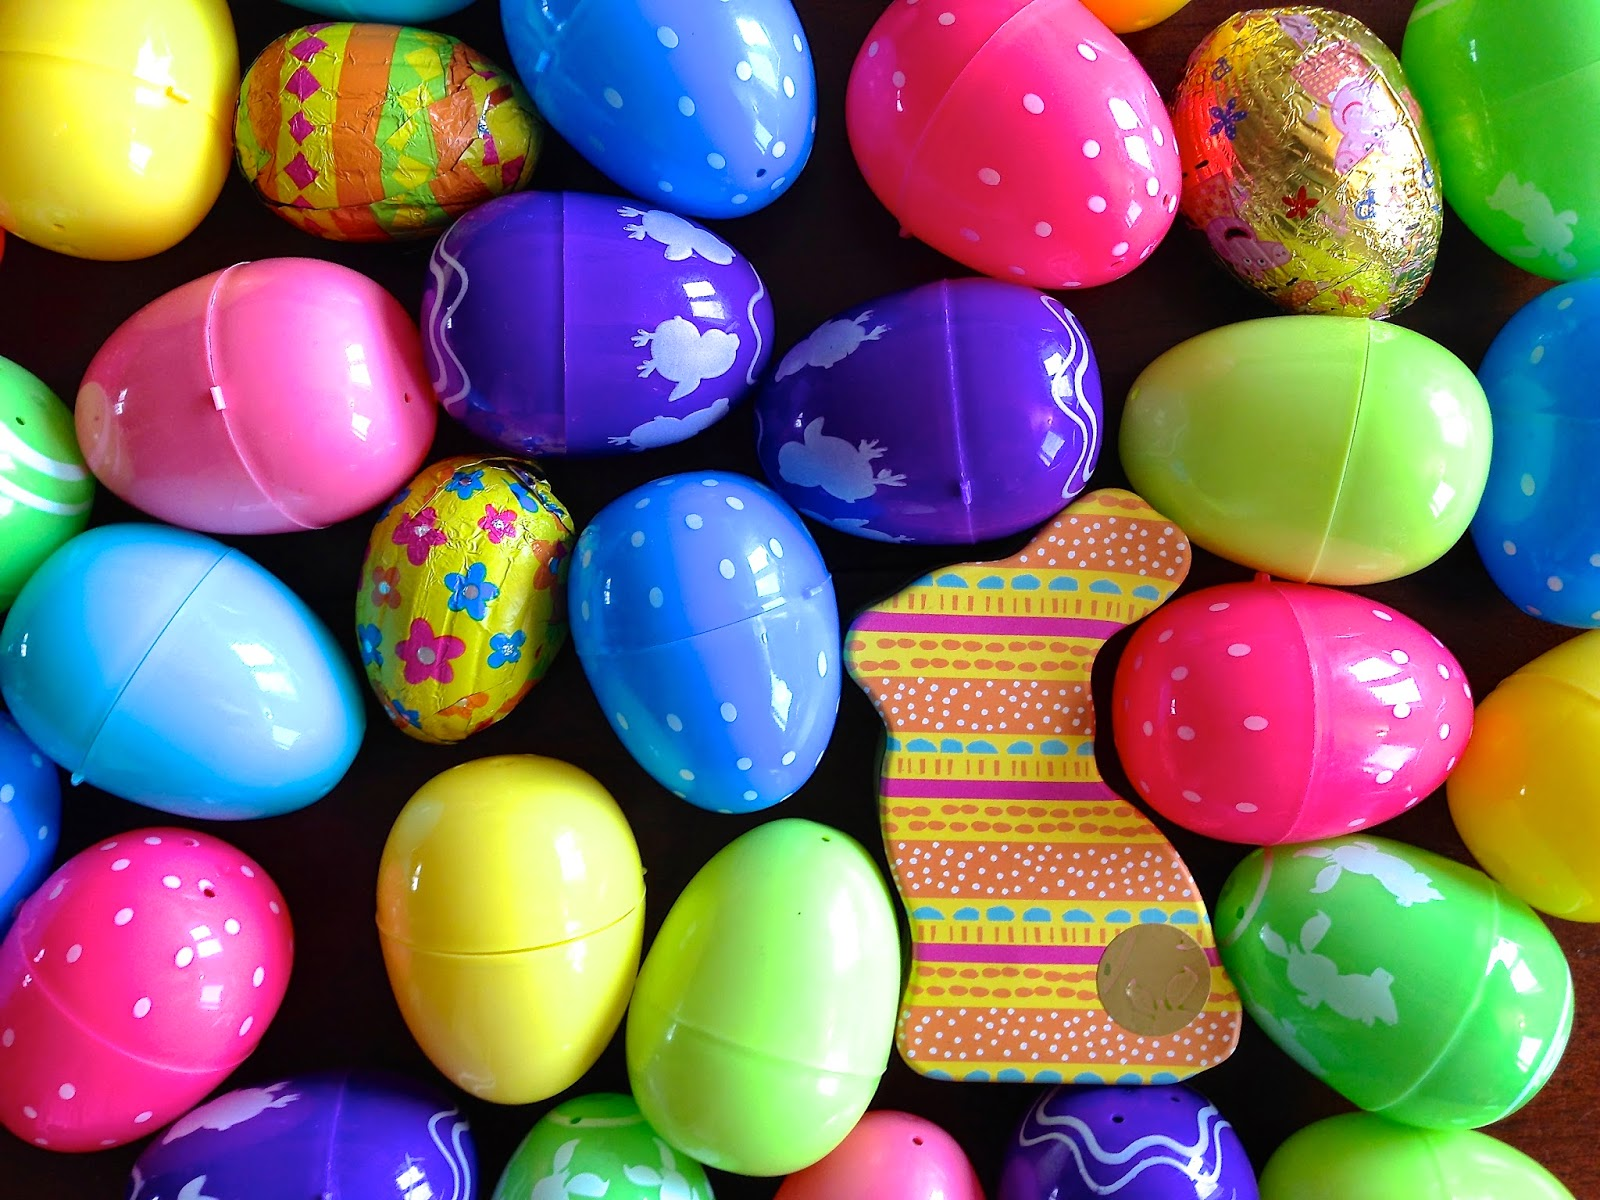 Easter eggs and chocolate